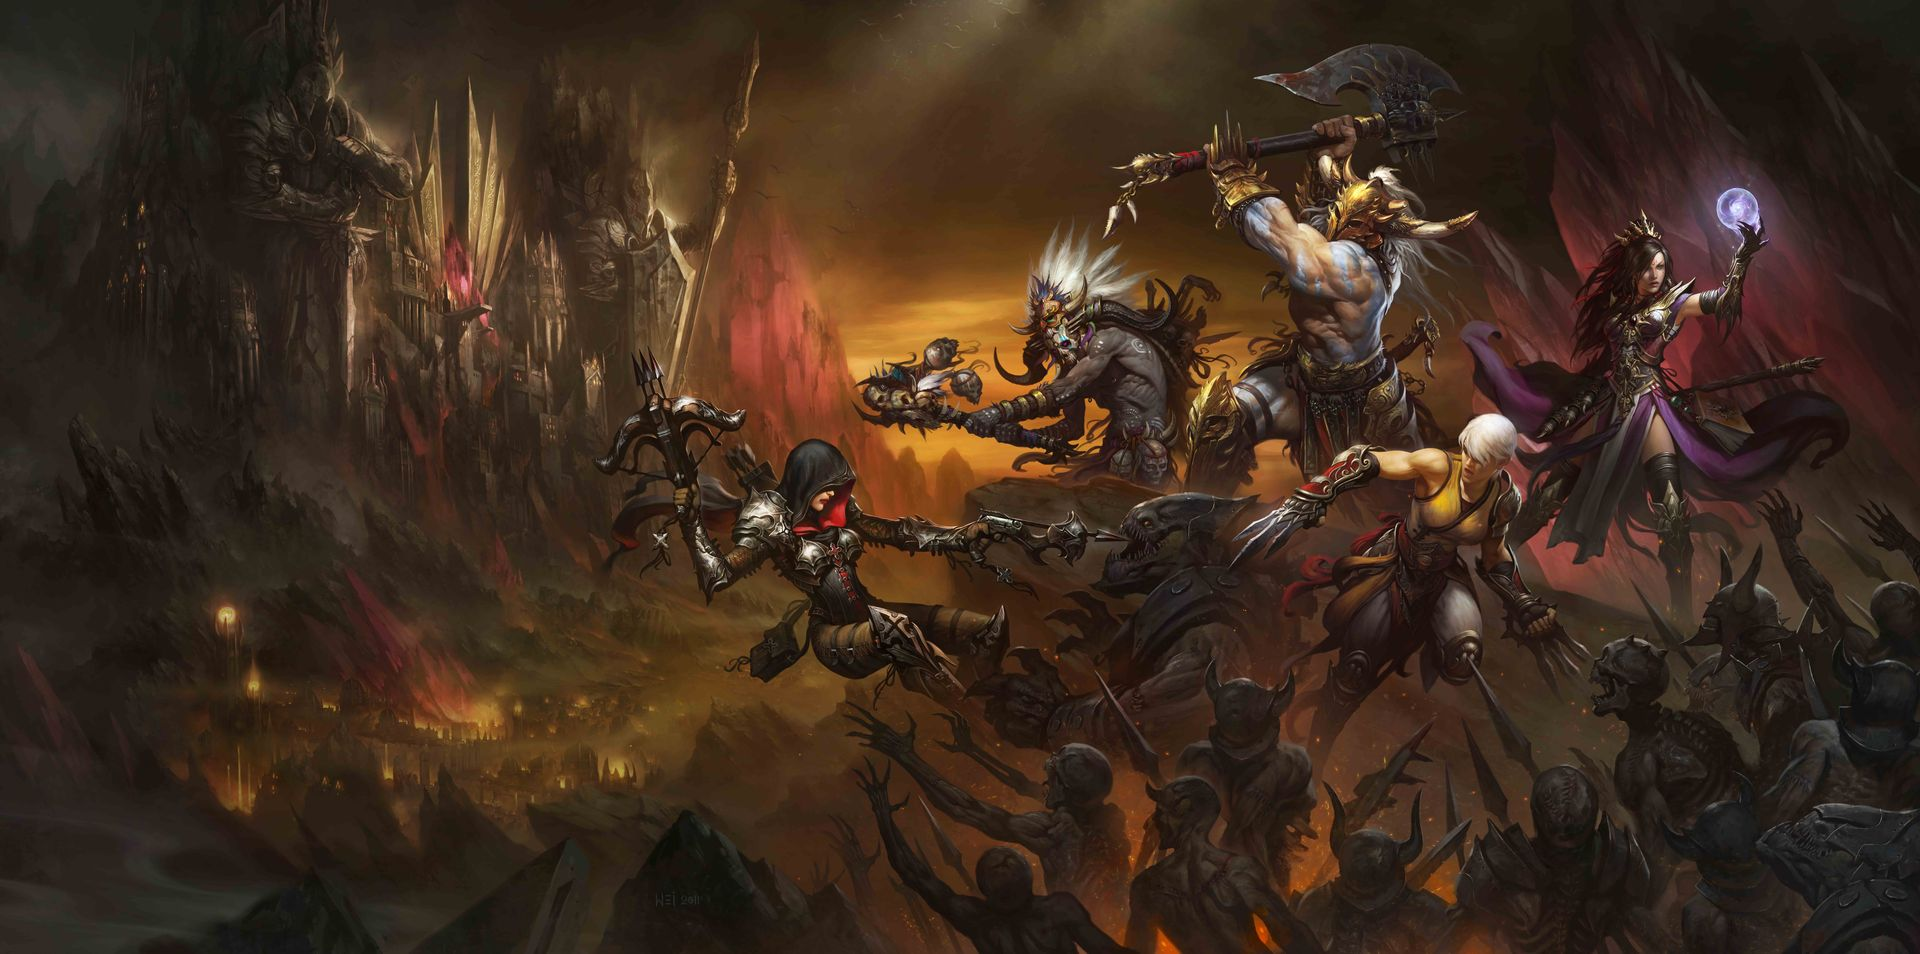 diablo-iii-heroes-rise-darkness-fall-cover-by-wei.jpg